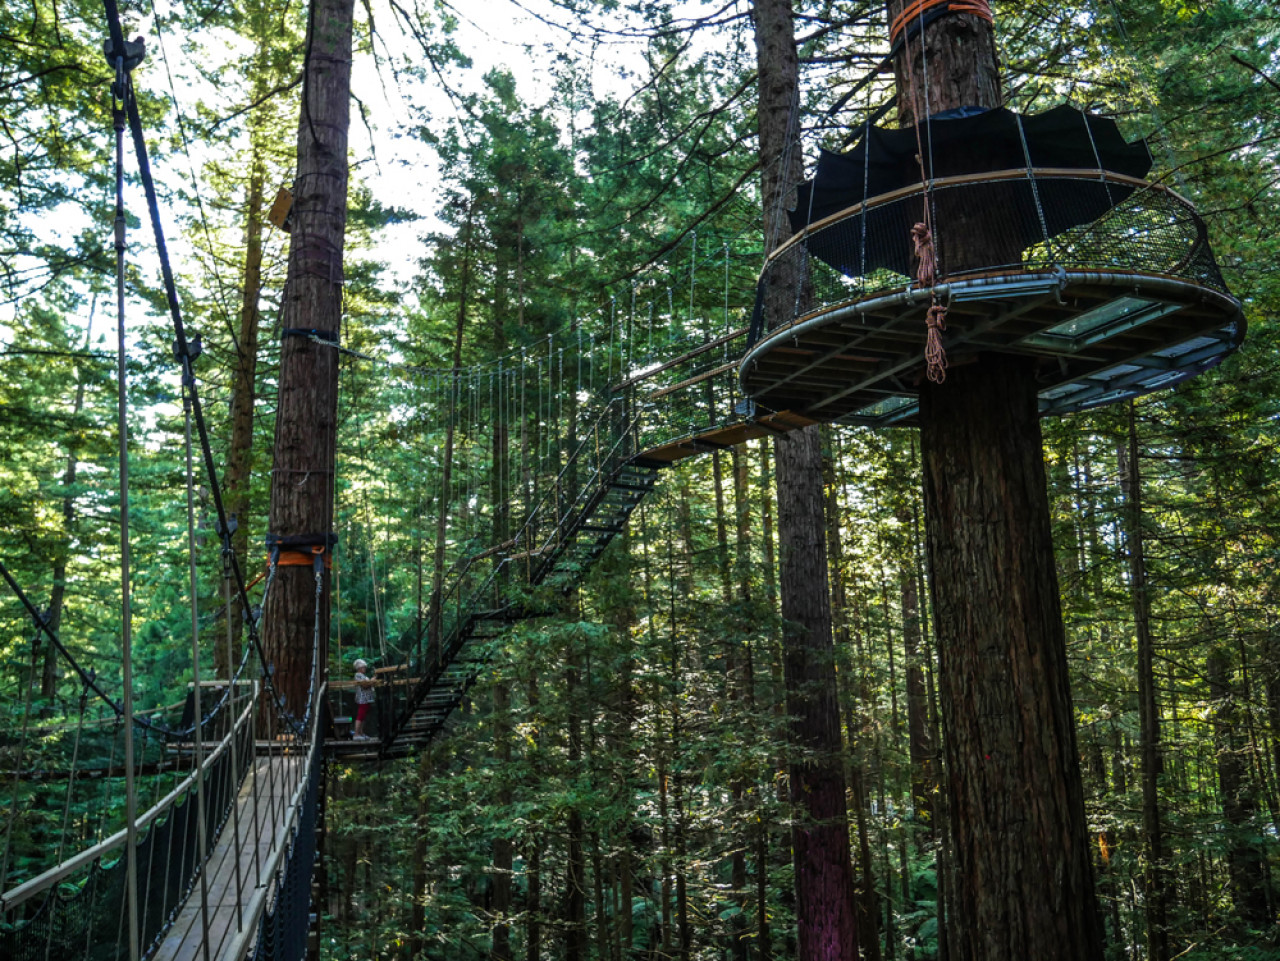 My personal highlight was the tower platform pictured above. Not only do you have an amazing 360 degree bird's eye view, it also gives you the feeling you're literally floating above the forest.